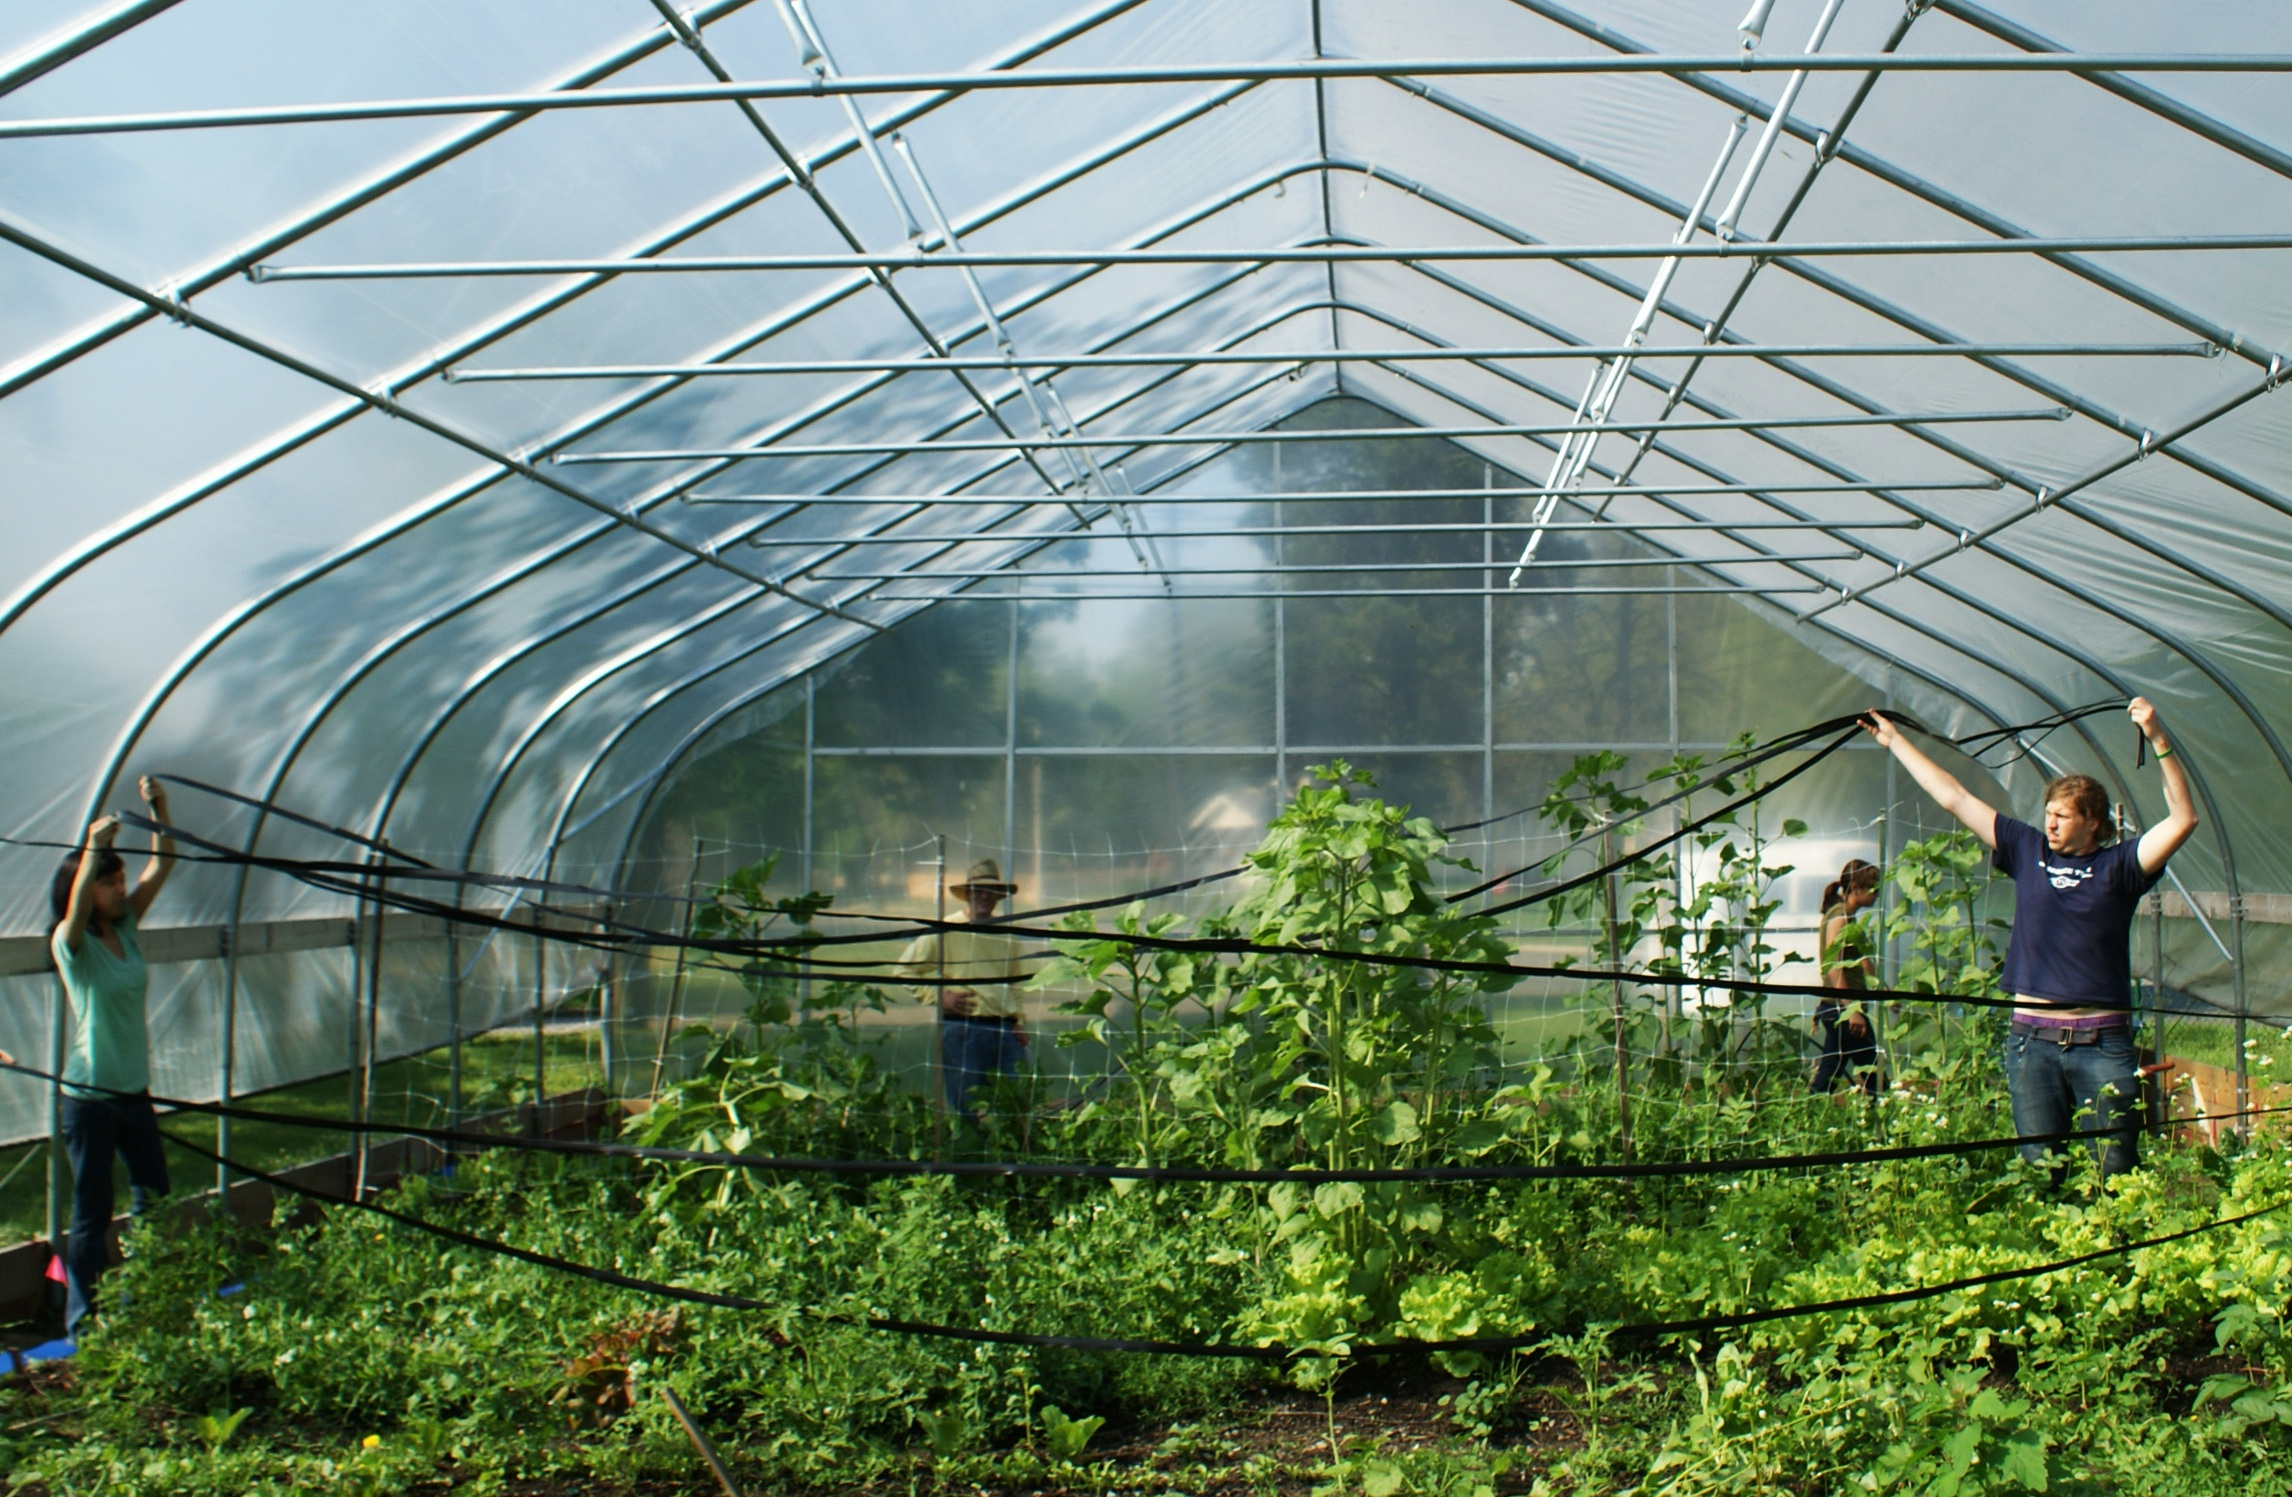 More than a garden sprouts in pontiac with slide show for Bureau county metro center